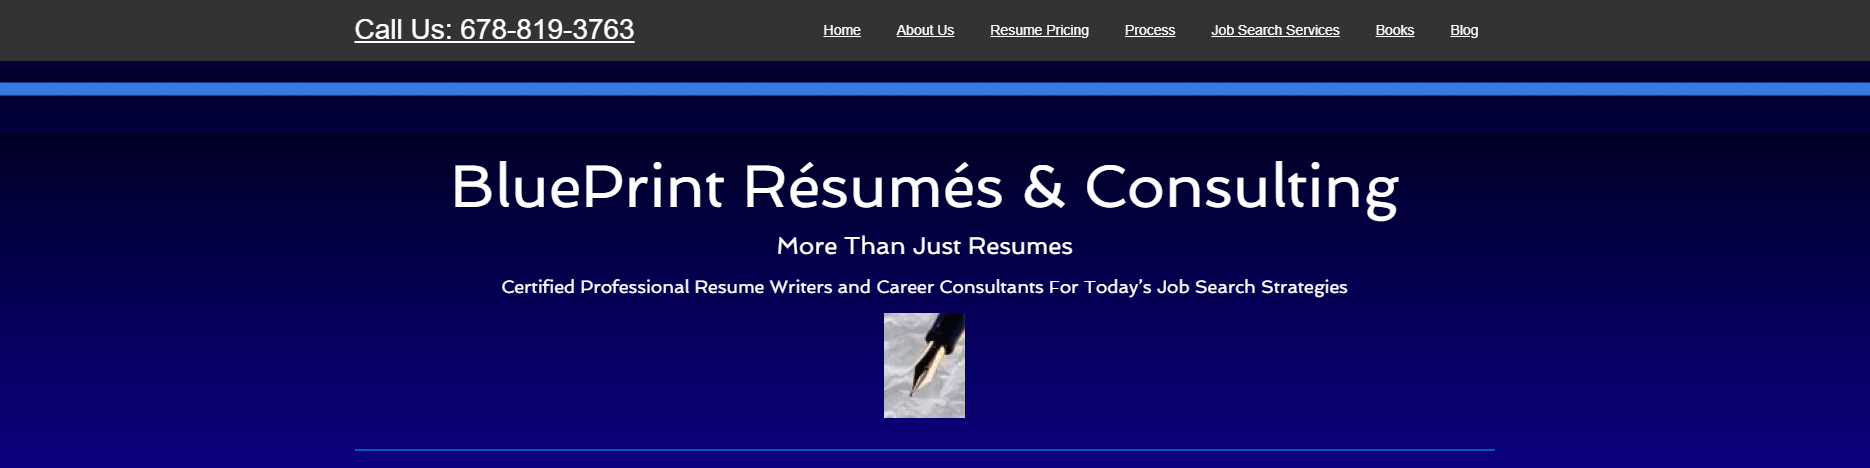 10 Best Resume Writers in 2020 – screenshot of BluePrint Resumes & Consulting homepage